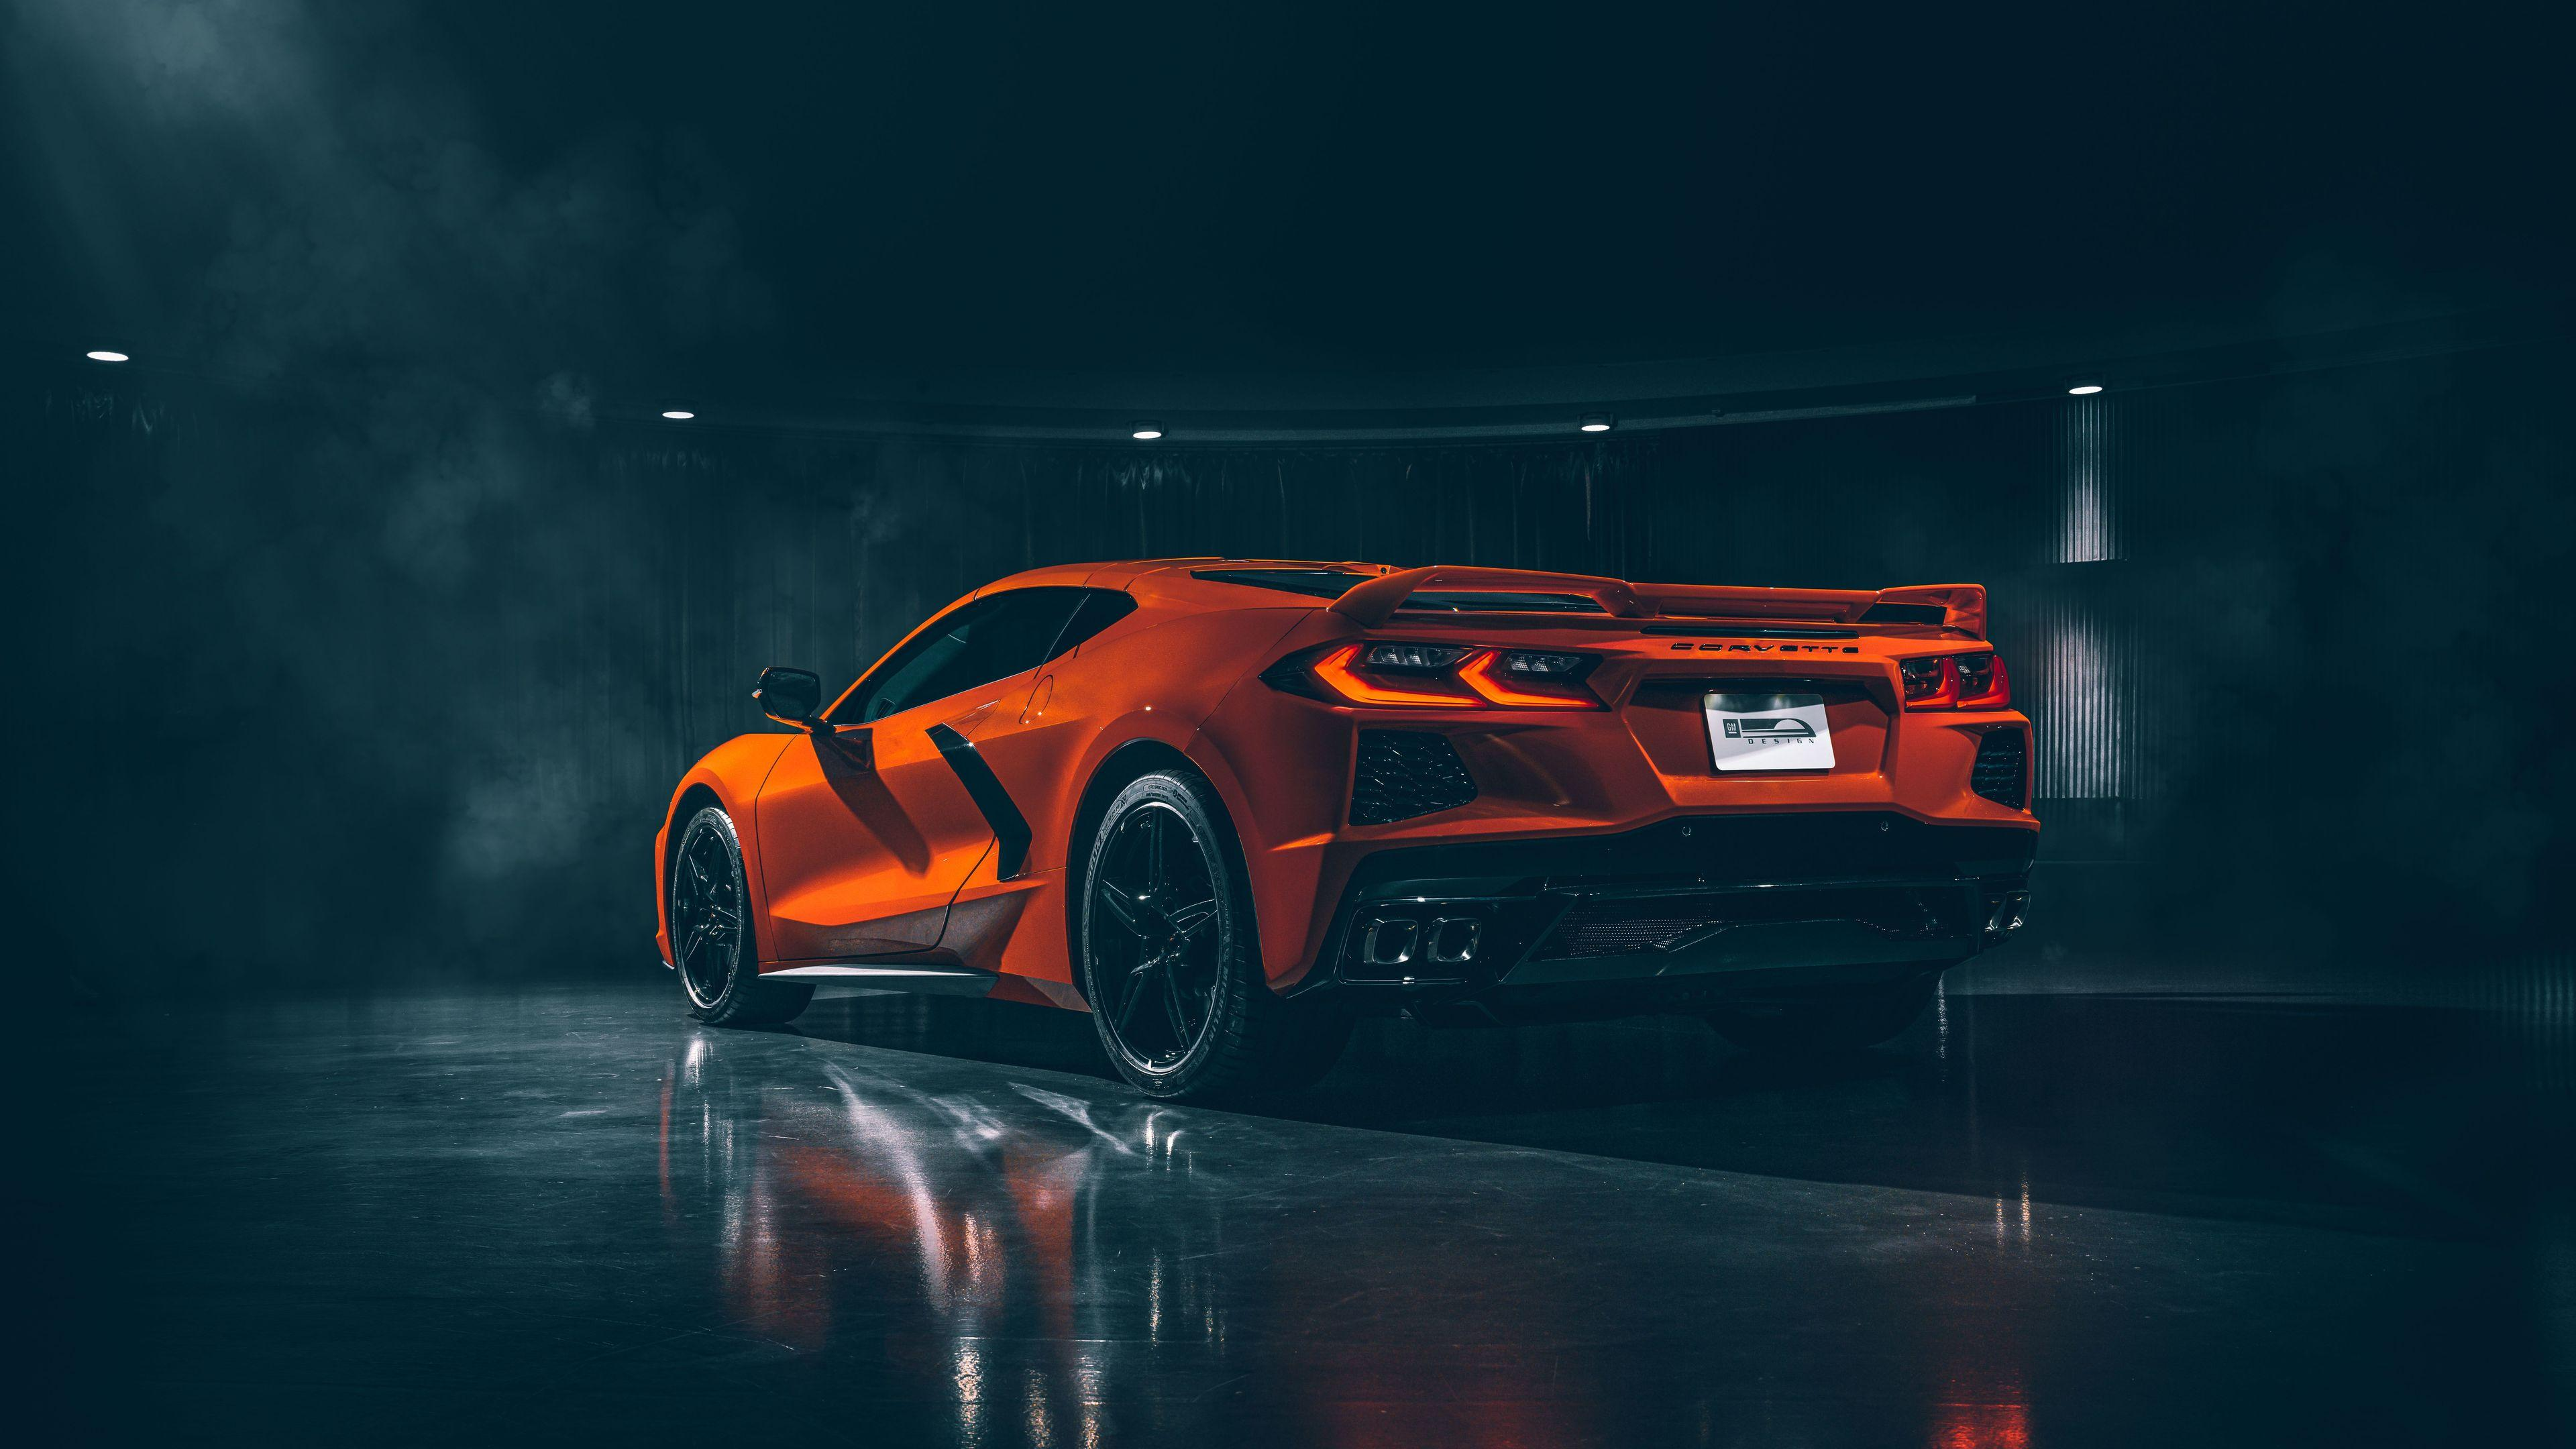 2020 Car Wallpapers Top Free 2020 Car Backgrounds Wallpaperaccess